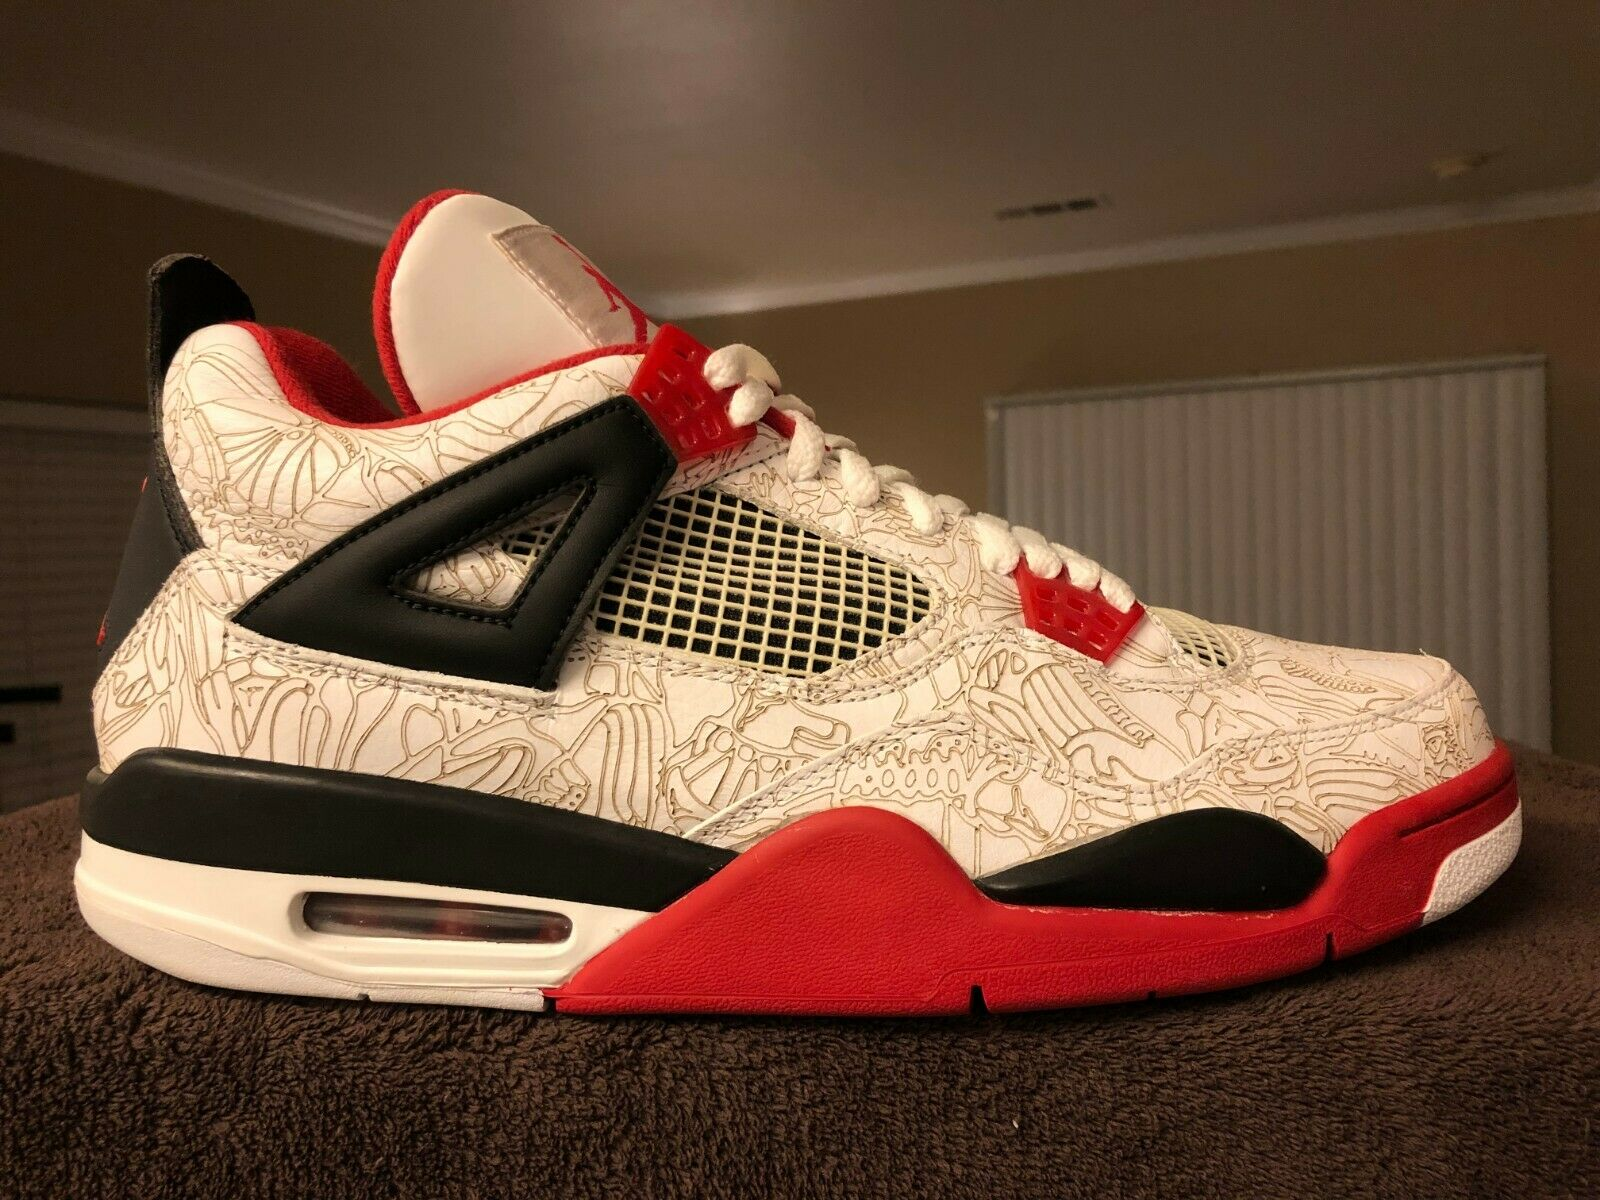 Nike Air Air Air Jordan Retro 4 Laser White DS Size 12 9b1931